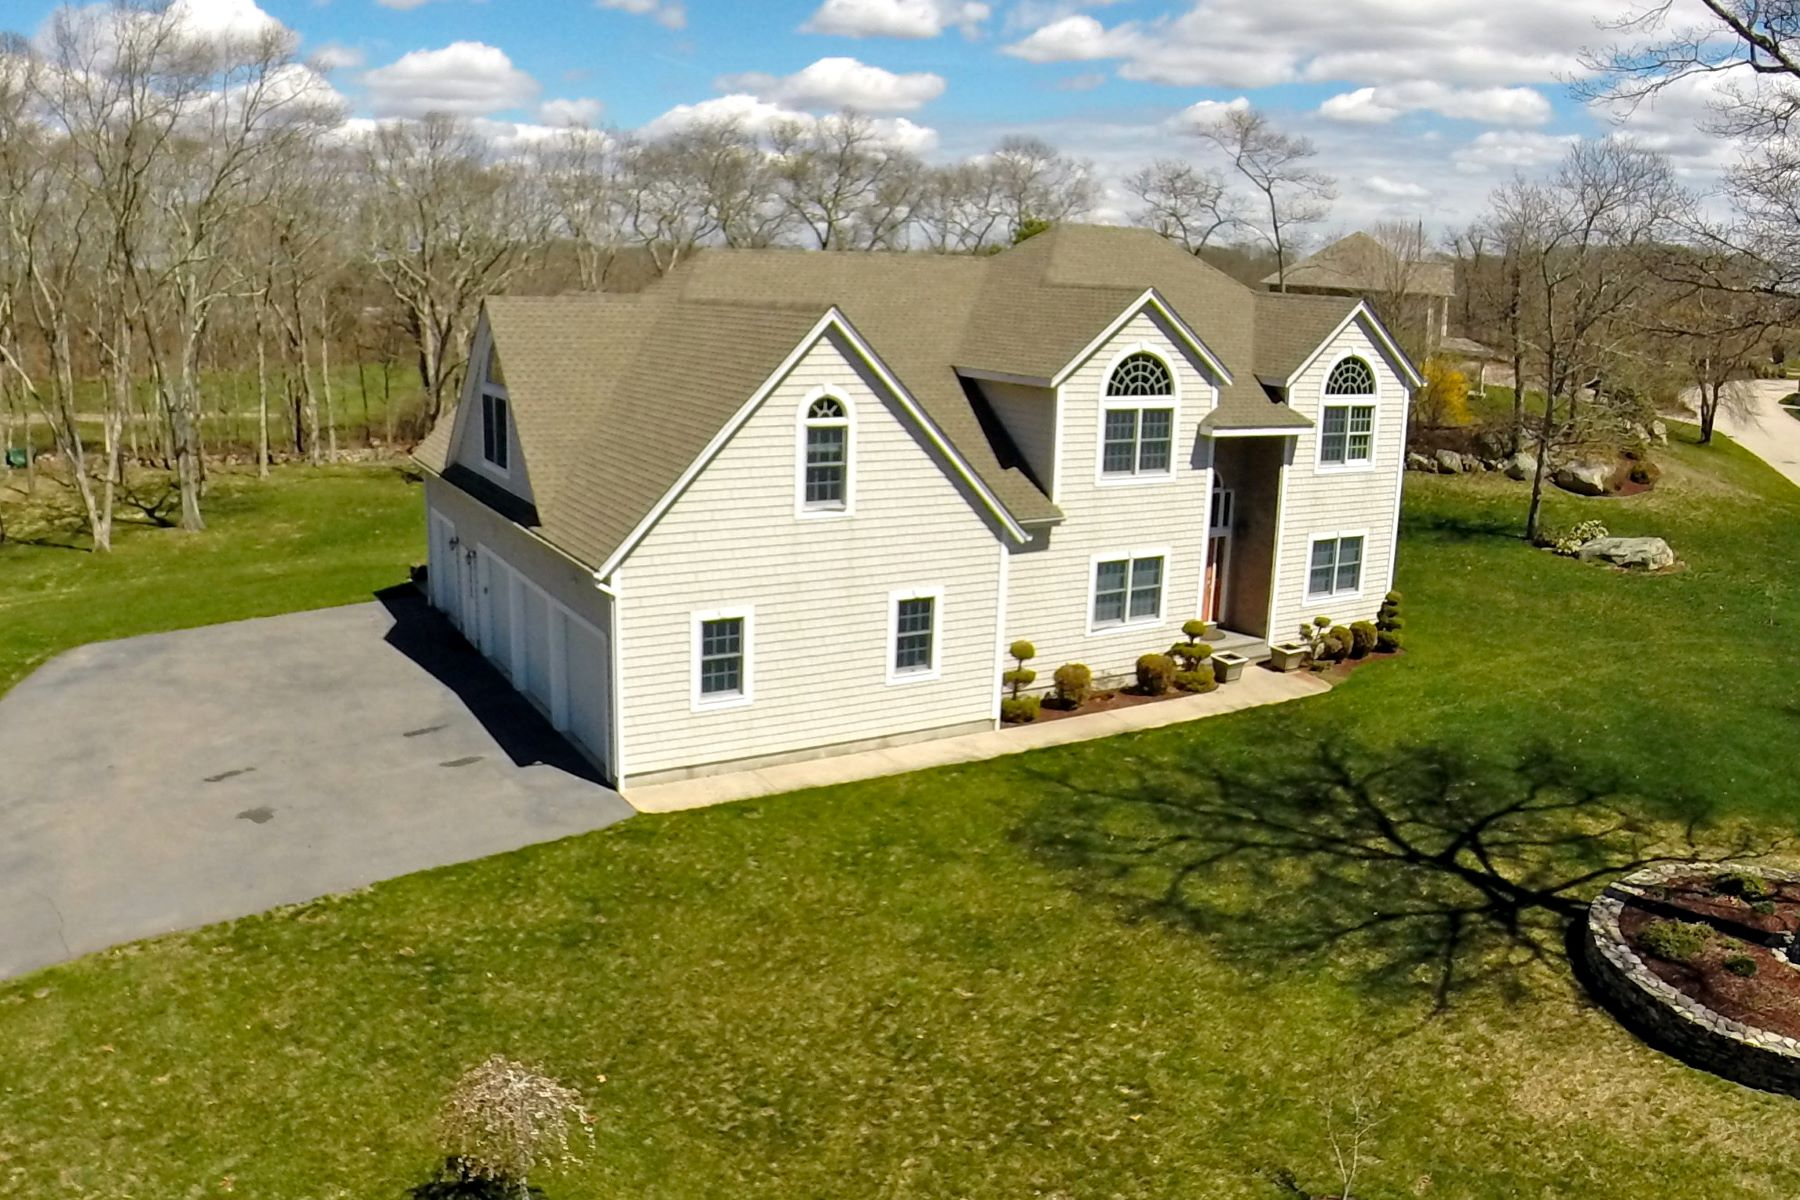 Single Family Home for Sale at Winnapaug 12 Wicklow Road Westerly, Rhode Island 02891 United States